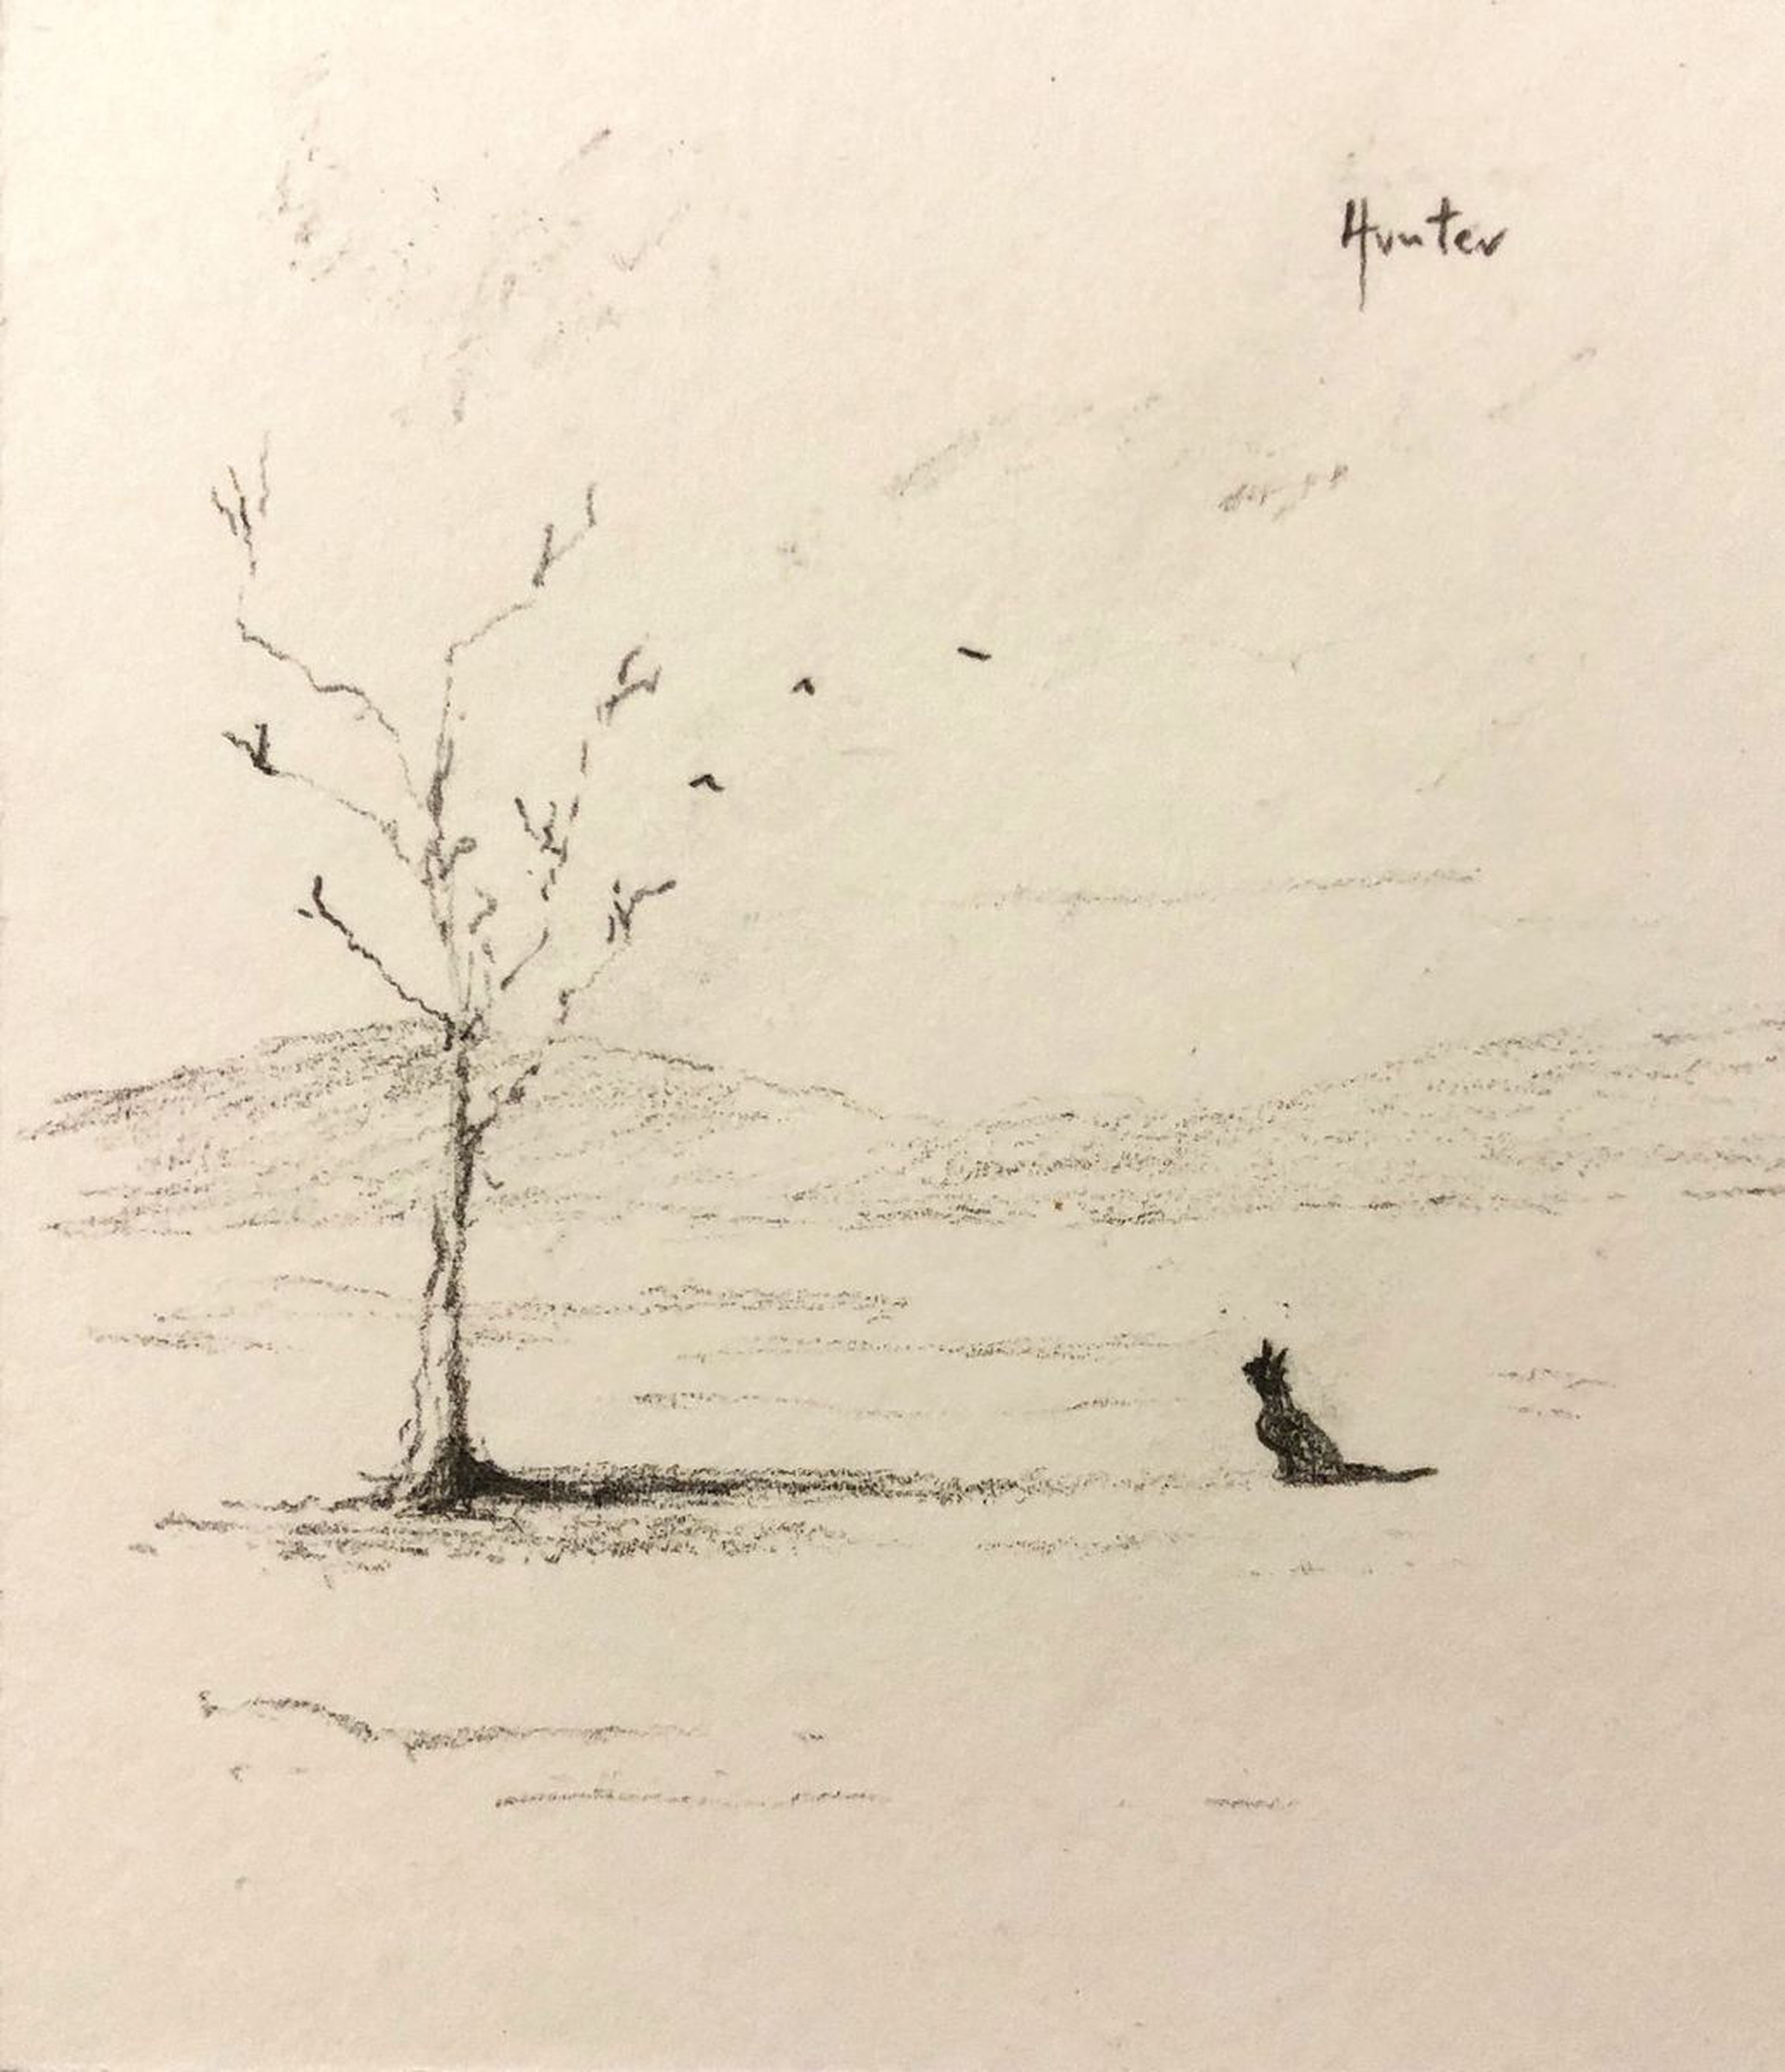 The cat the birds the lonely tree 2018 pencil drawing